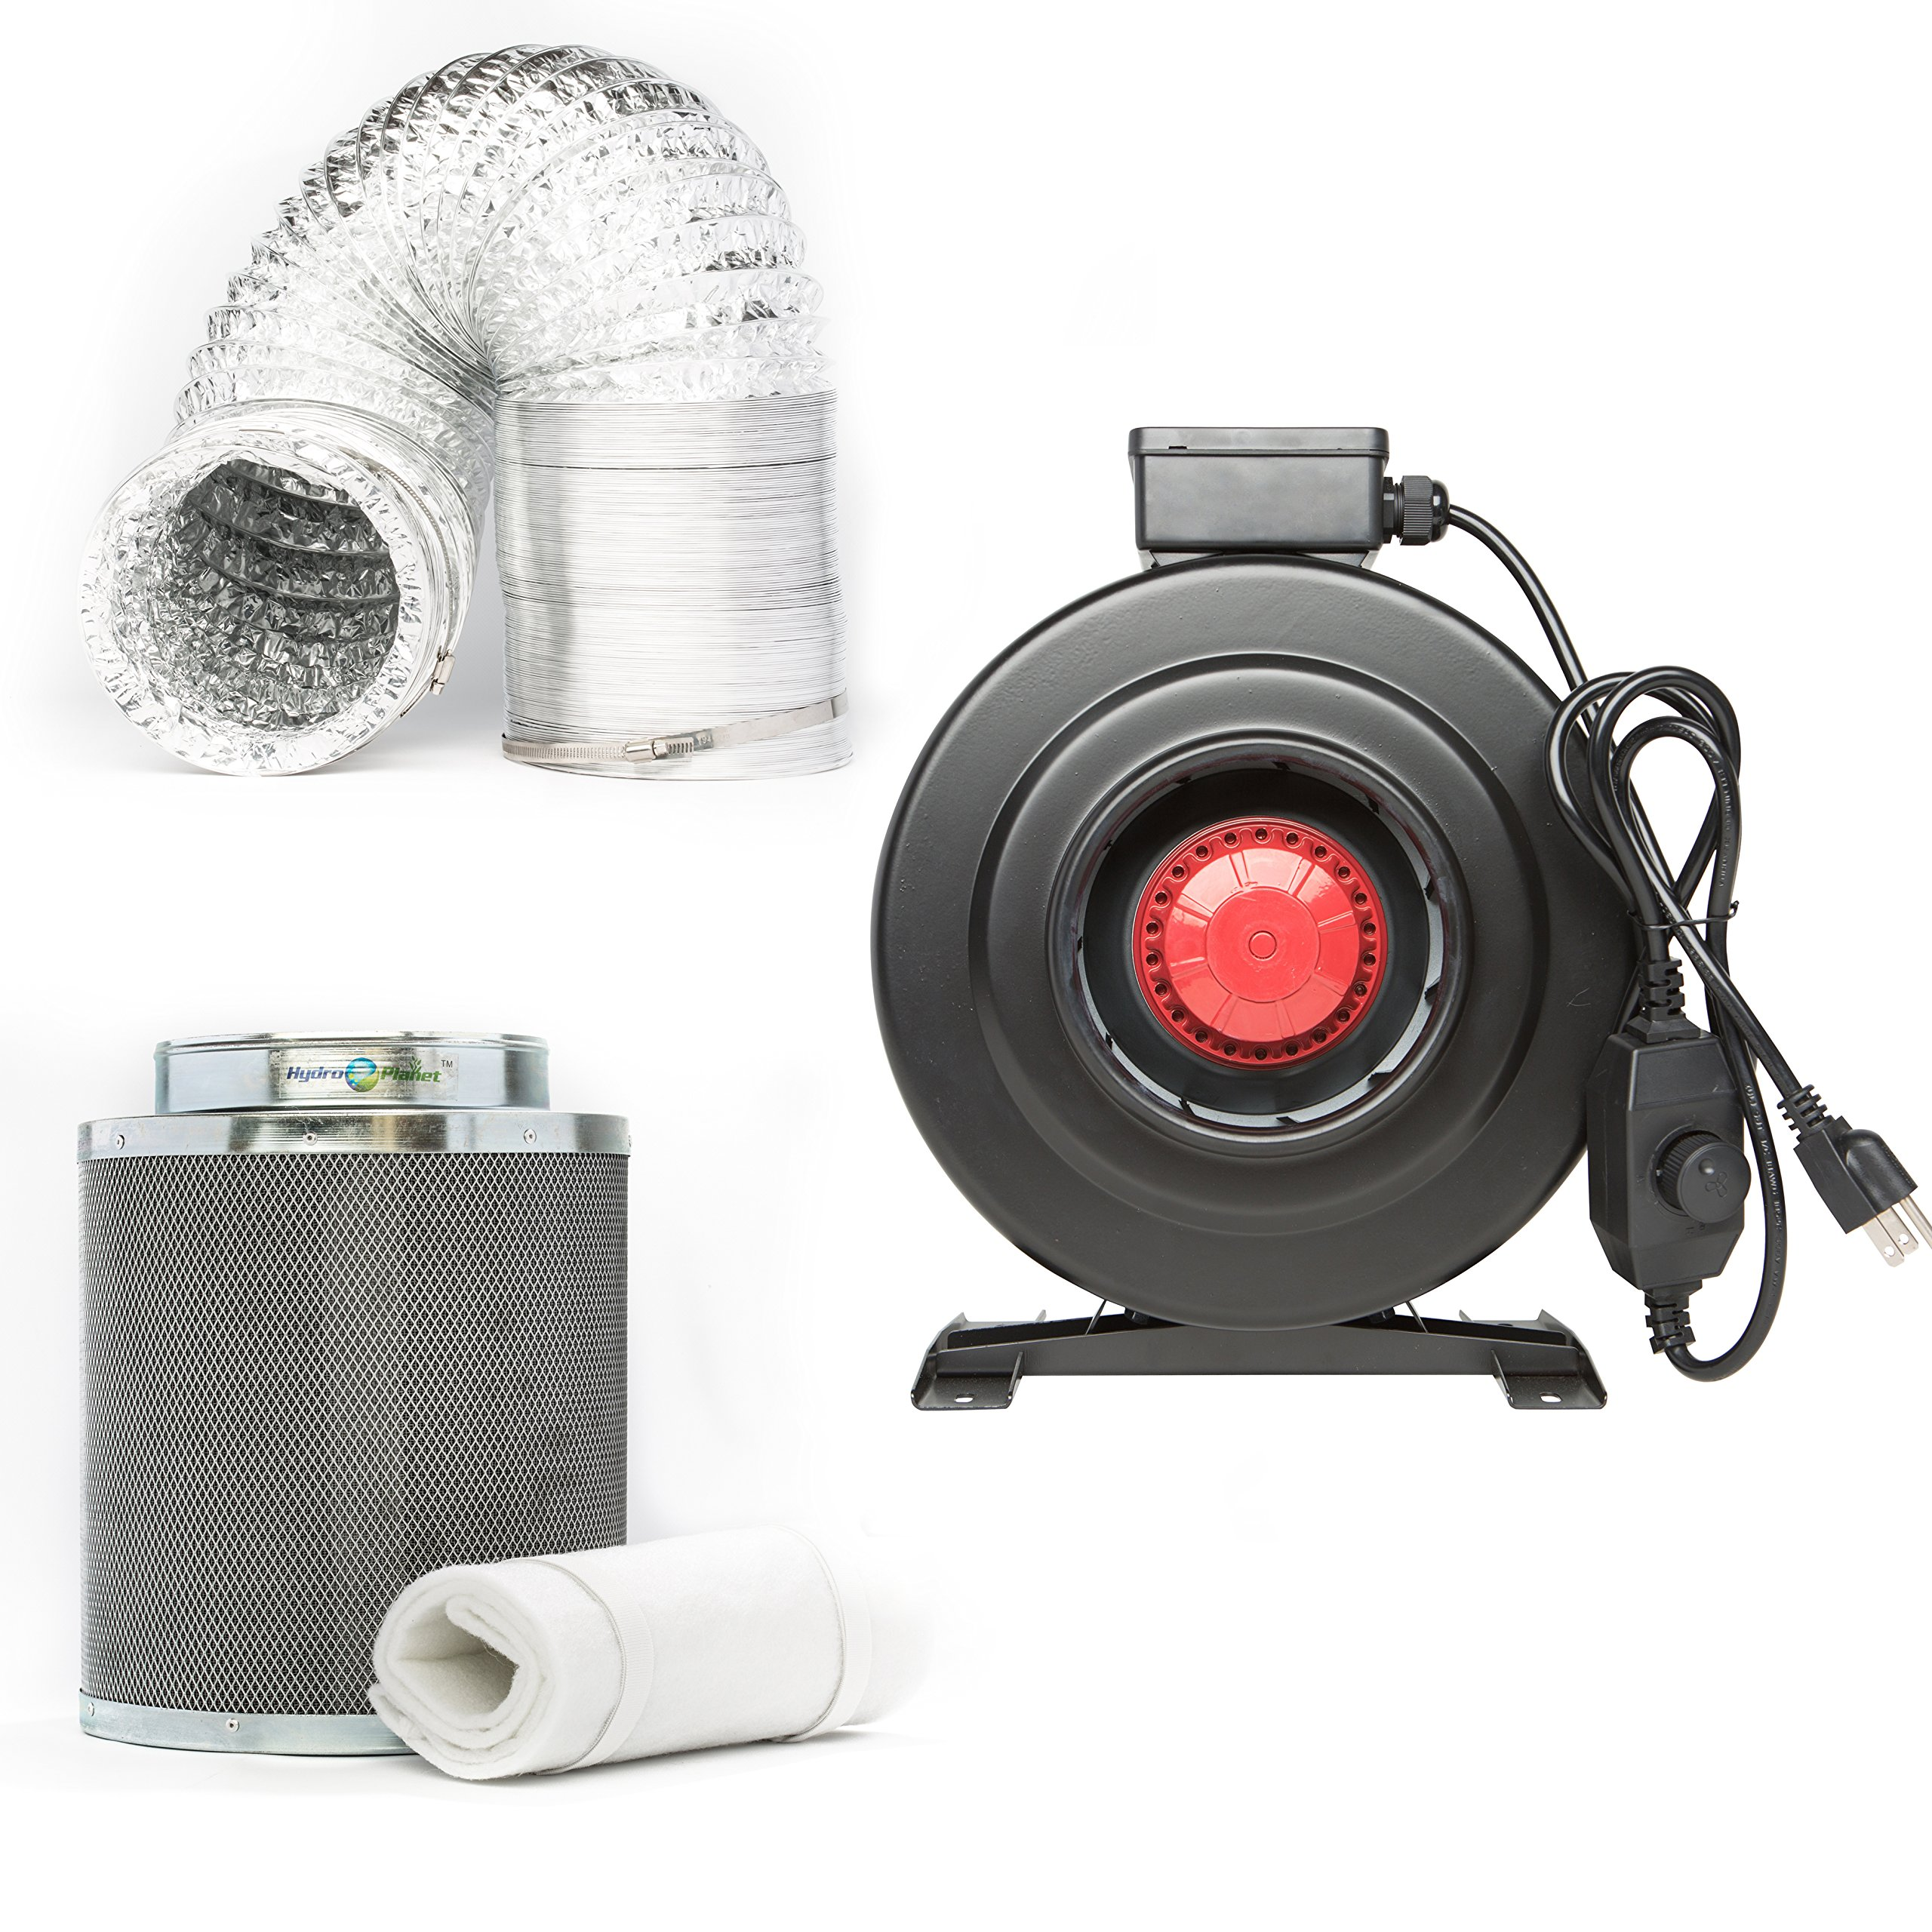 Hydroplanet™ 4-inch CFM 210 Inline Fan built-in speed controller Carbon Air Filter and 25-feet Ducting Combo Kit (4-inch kit)